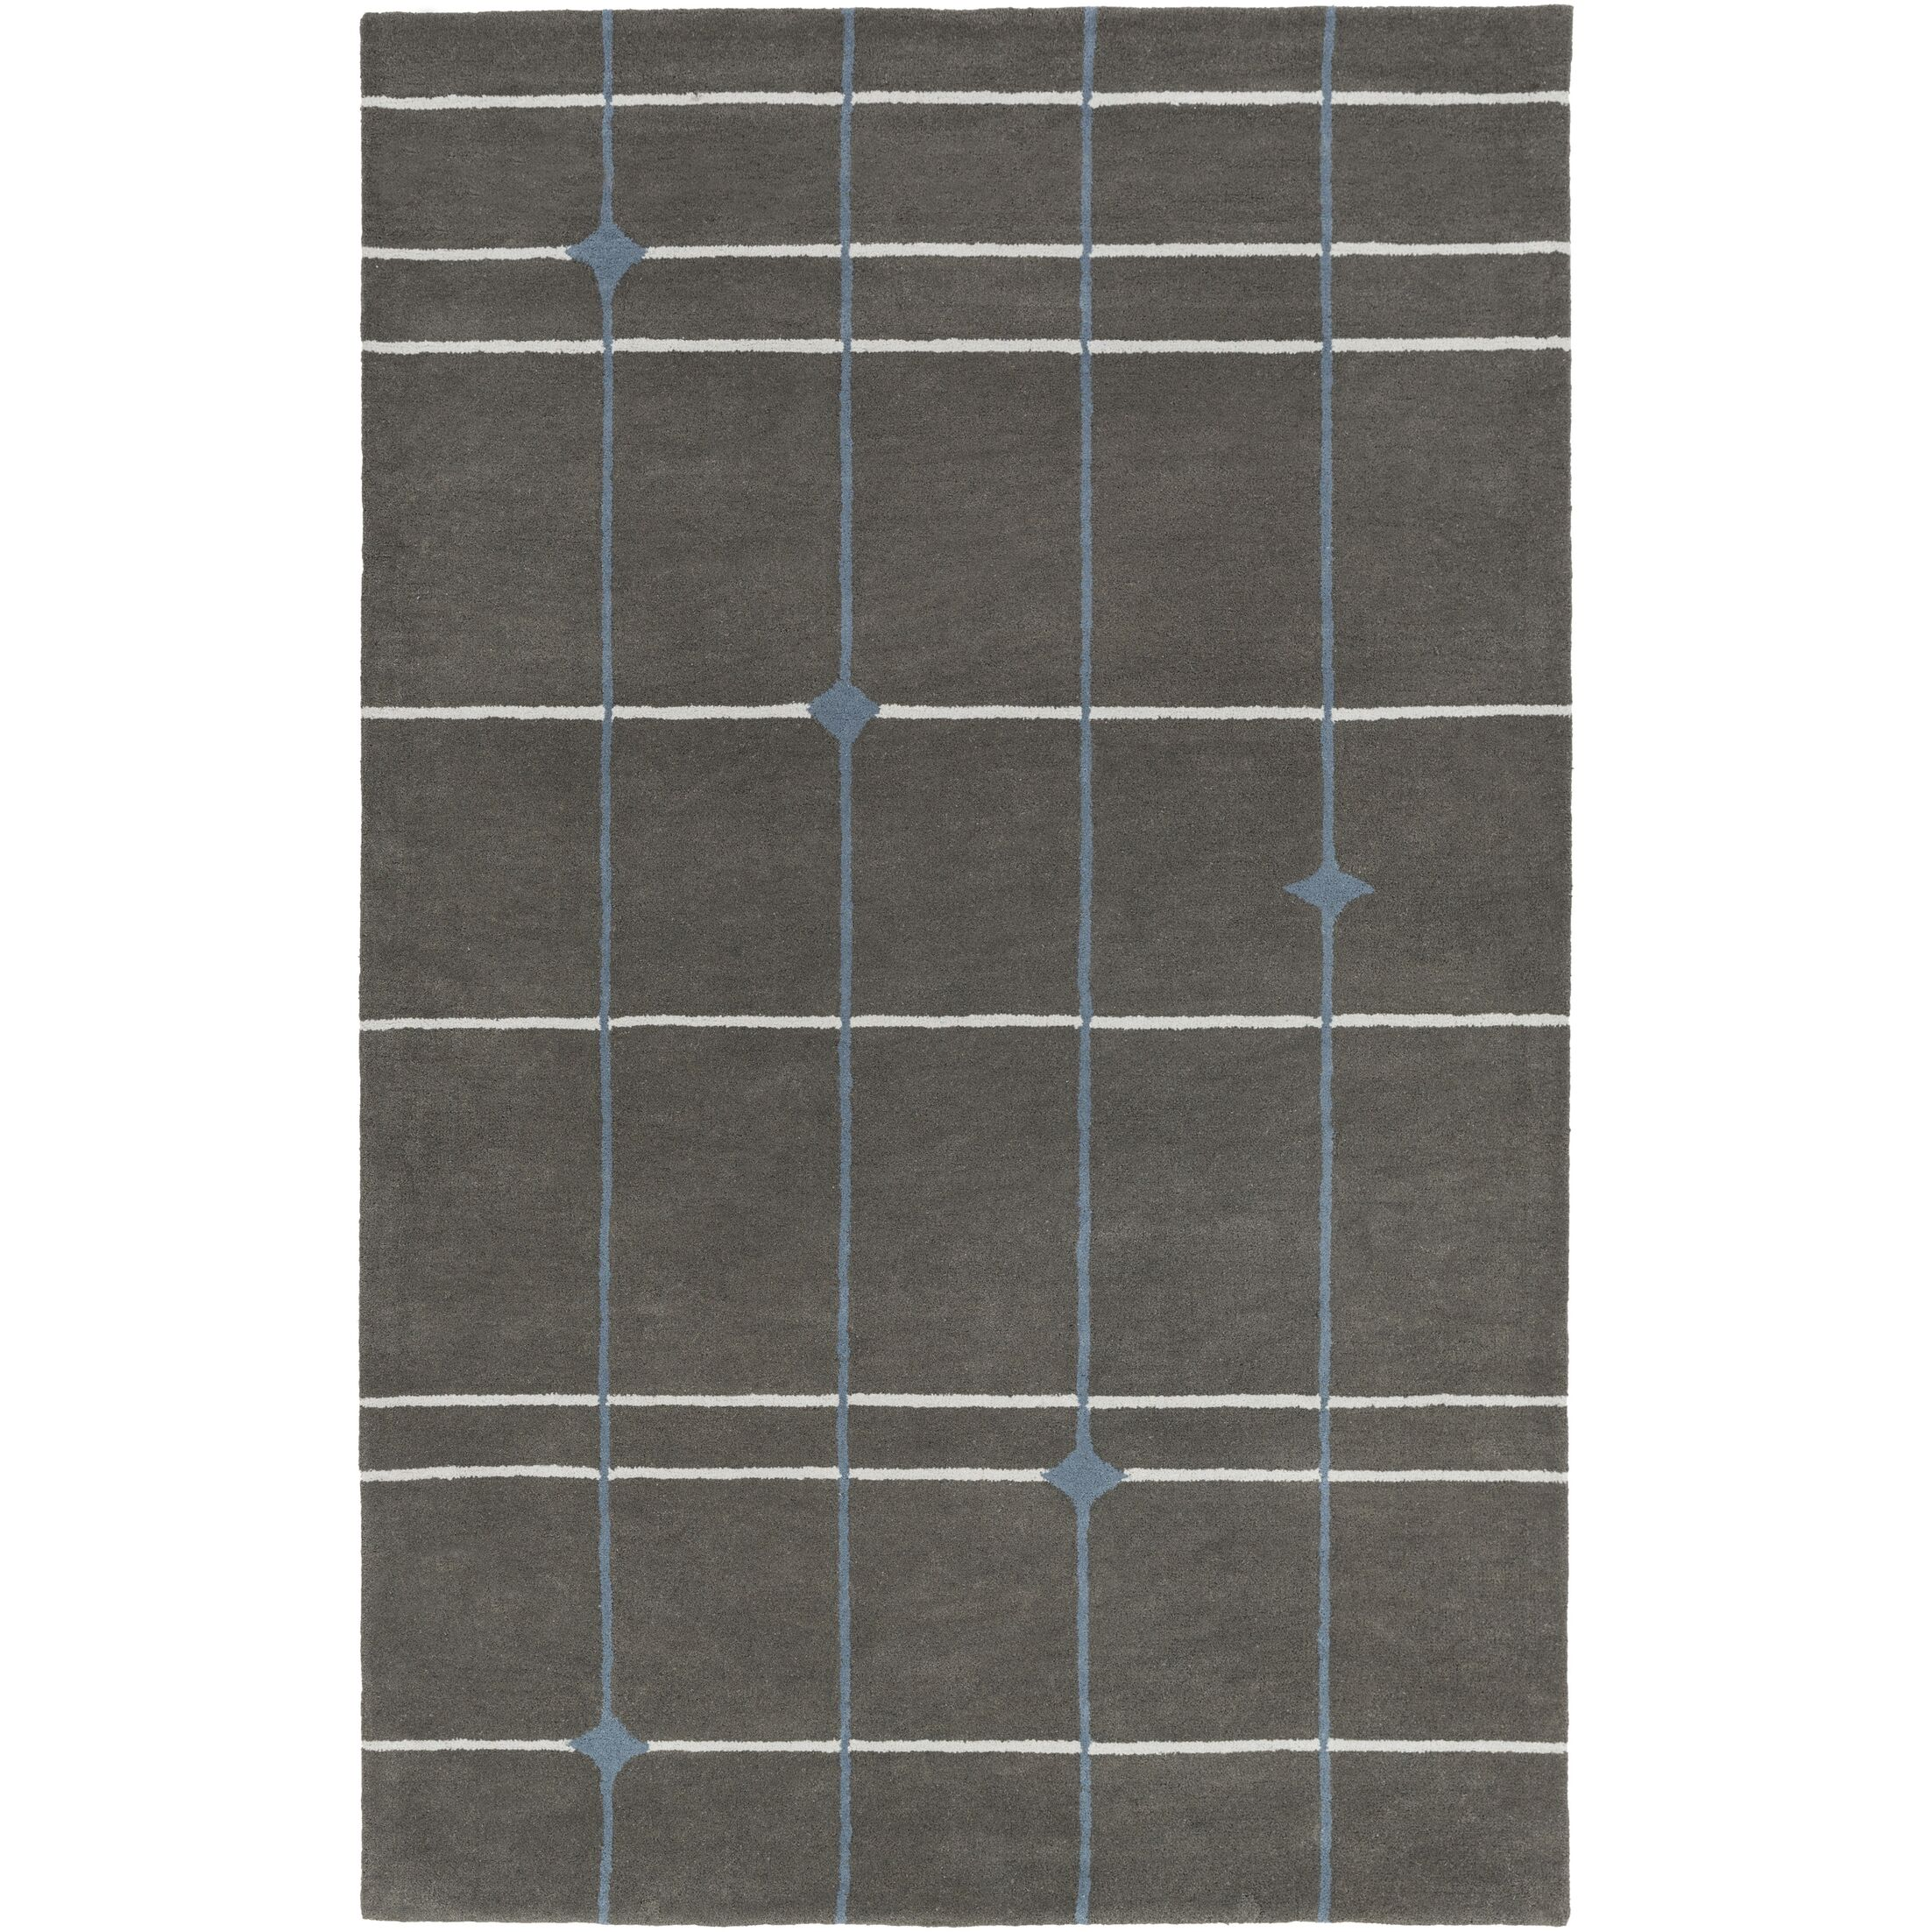 Mod Pop Hand-Tufted Gray Area Rug Rug Size: Rectangle 4' x 6'